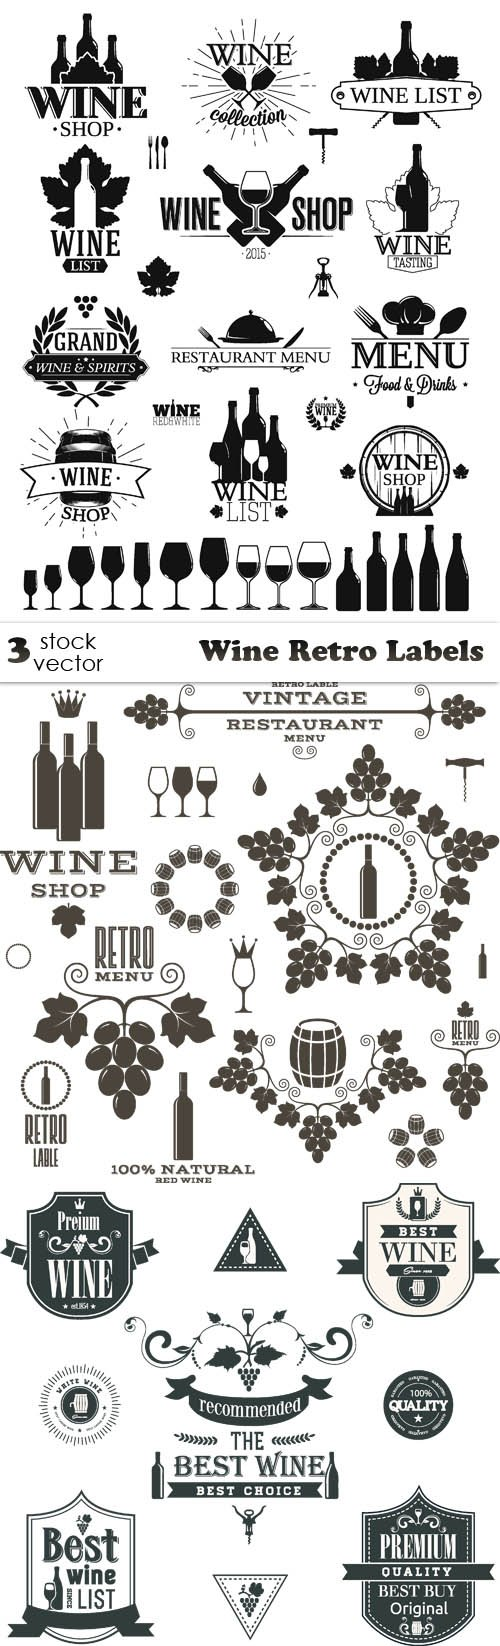 Vectors - Wine Retro Labels